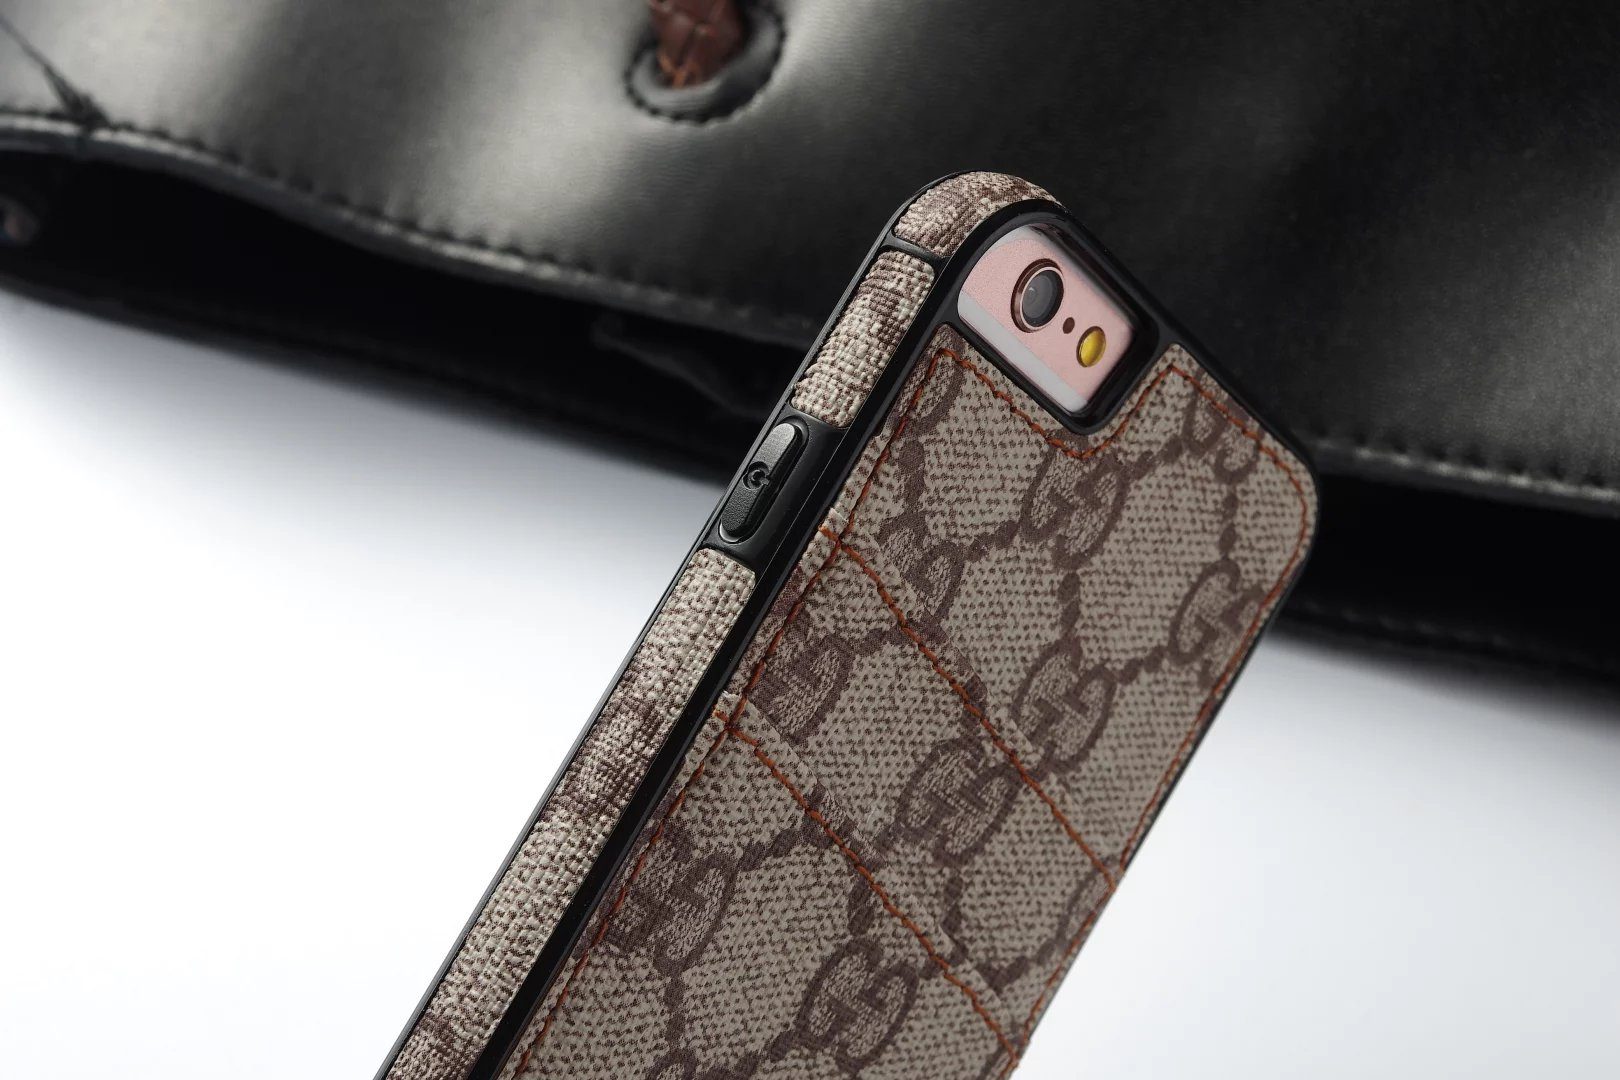 iphone hülle designen hülle iphone Burberry iphone 8 Plus hüllen handy bumper 8 Pluslbst gestalten designer handyhüllen iphone 8 Plus handyschalen bedrucken las8 Plusn handy flip ca8 Plus elbst gestalten iphone 8 Plus vergleich iphone 8 Plus vorschau